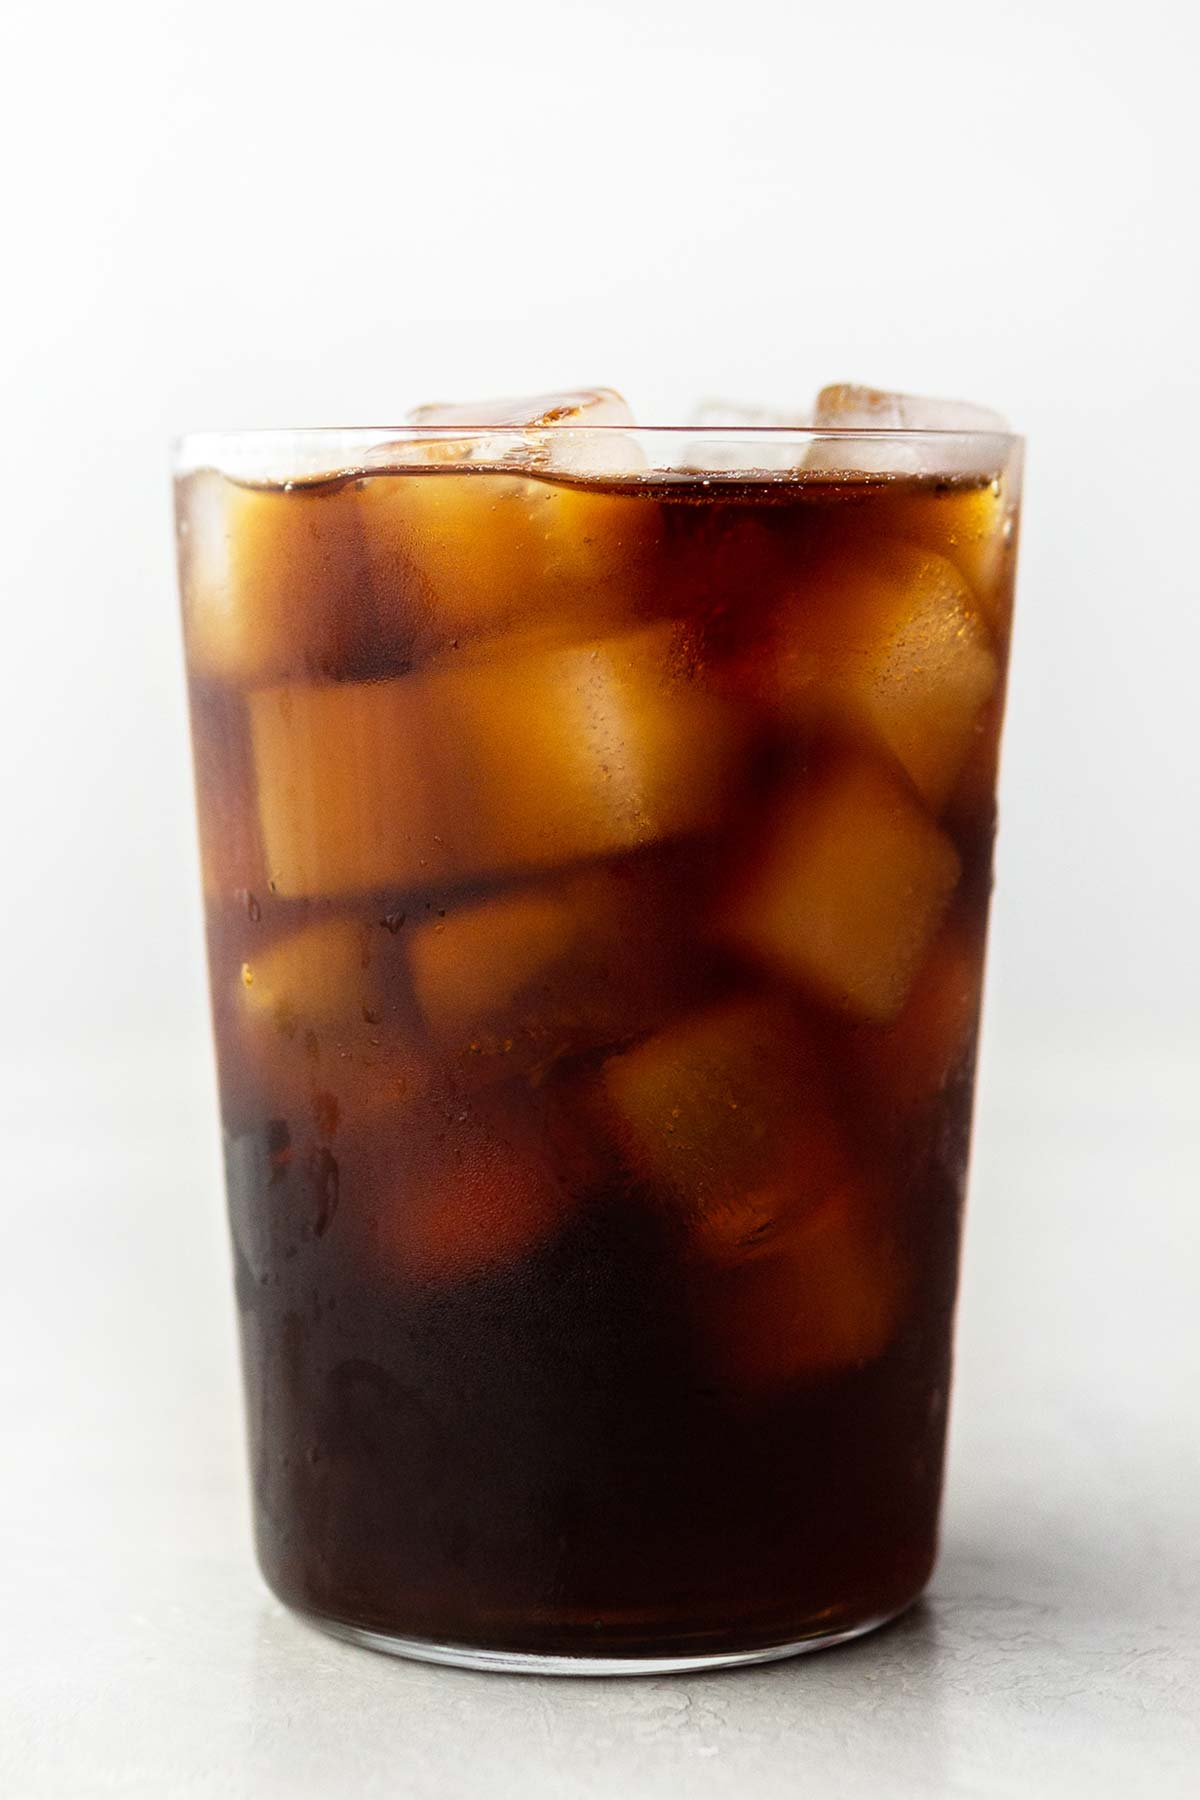 Starbucks Cold Brew Coffee in a cup with ice.